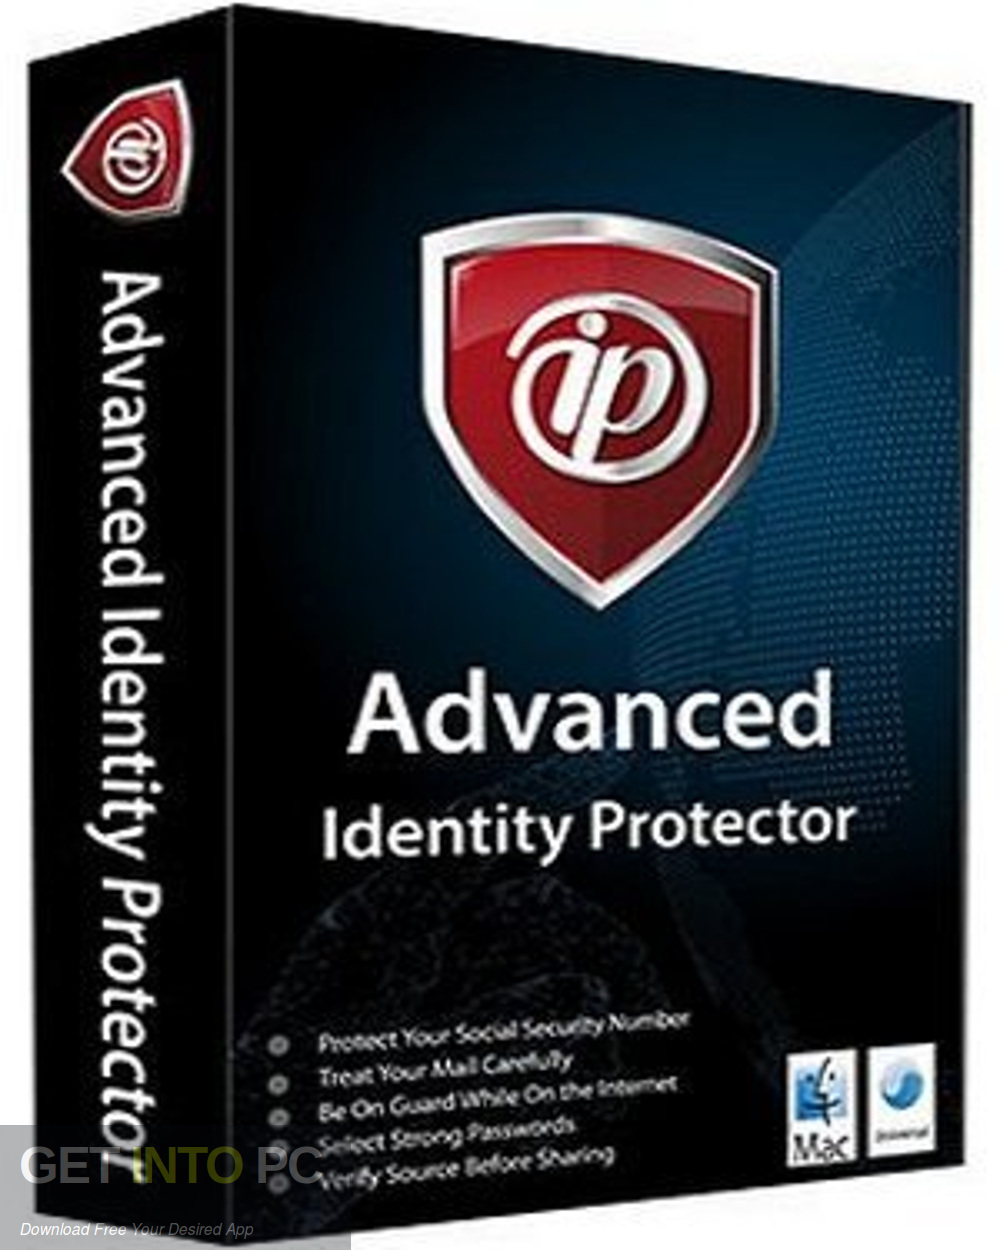 Free download of Advanced Identity Protector-GetintoPC.com